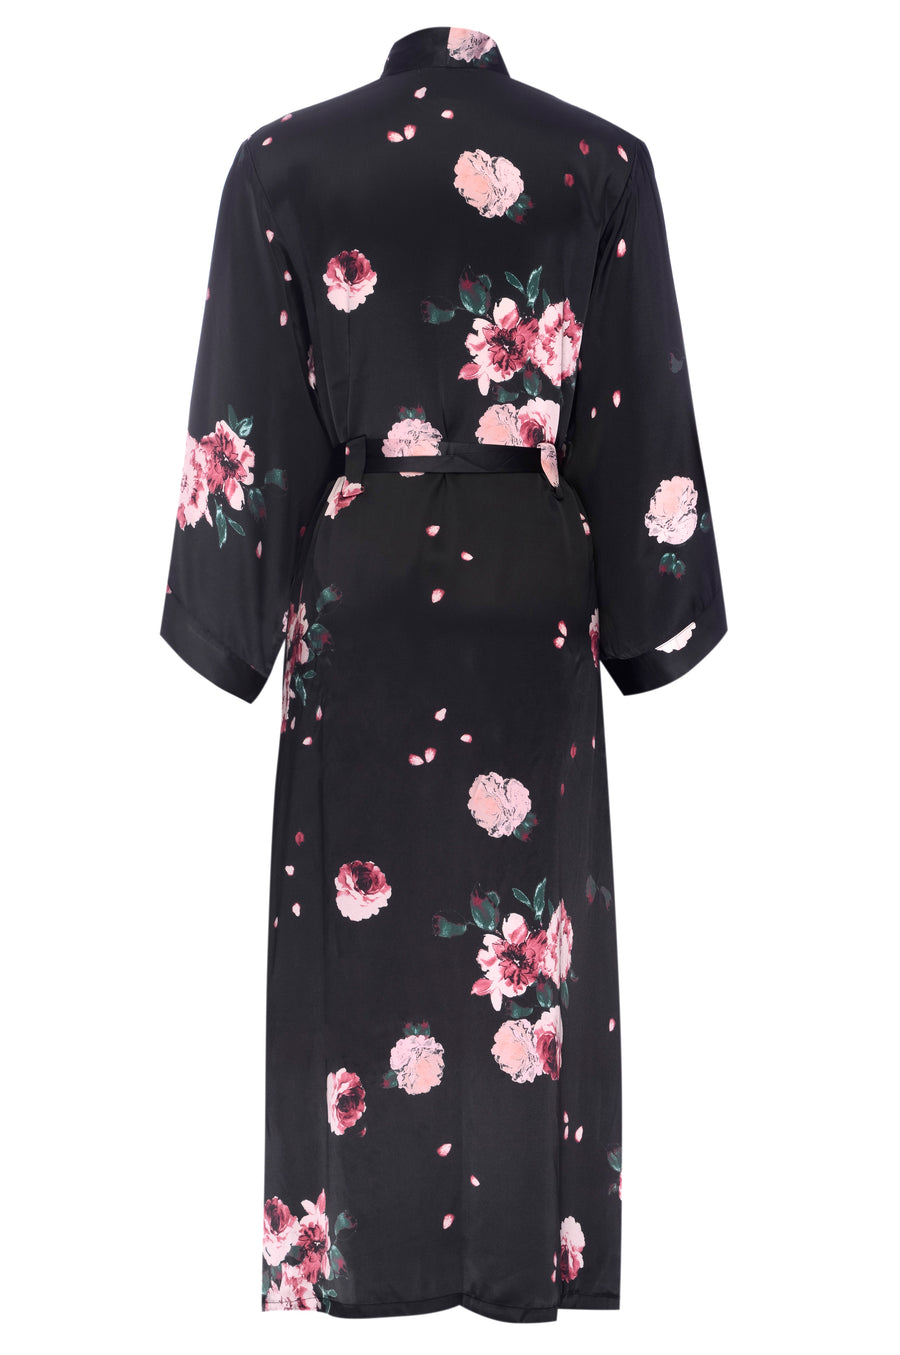 PRESALE: Silk Charmeuse Long Silk Robe: Black Rose Print